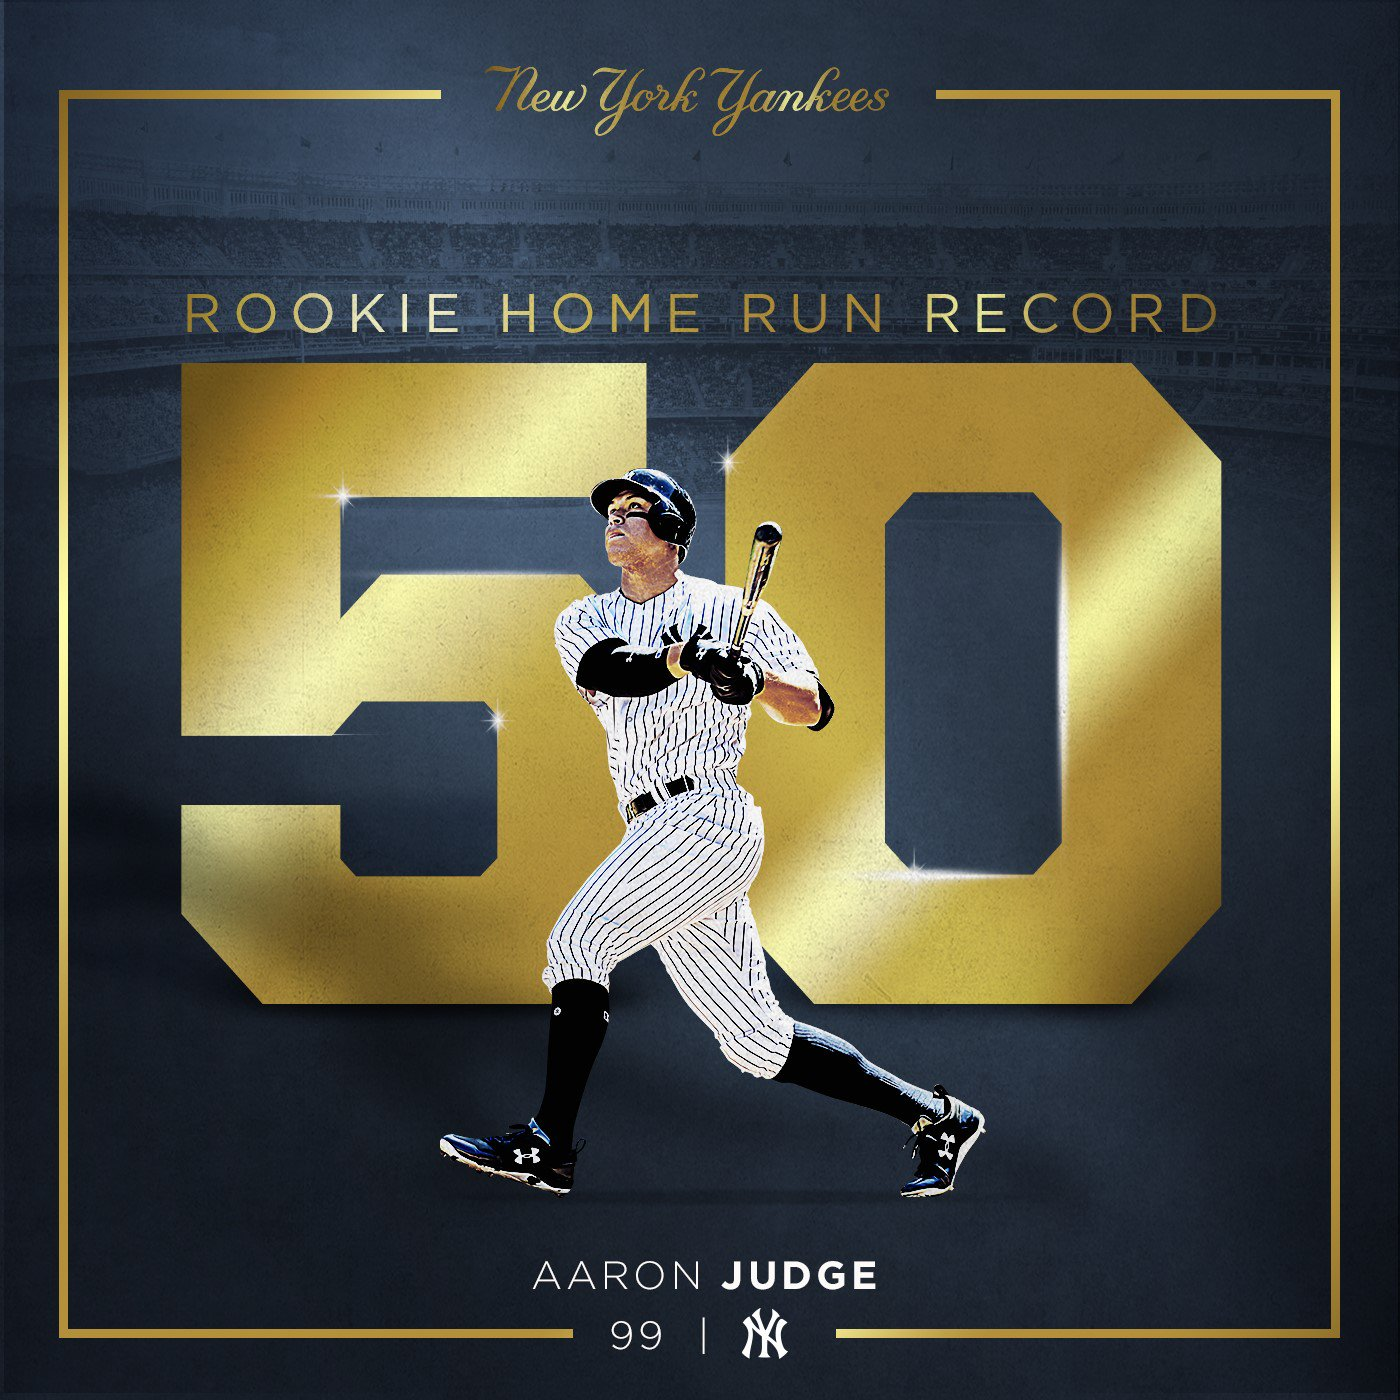 Time to edit the history books!  #AllRise for Aaron Judge – the new record holder for most HR by a rookie! https://t.co/KuE2otXn7B